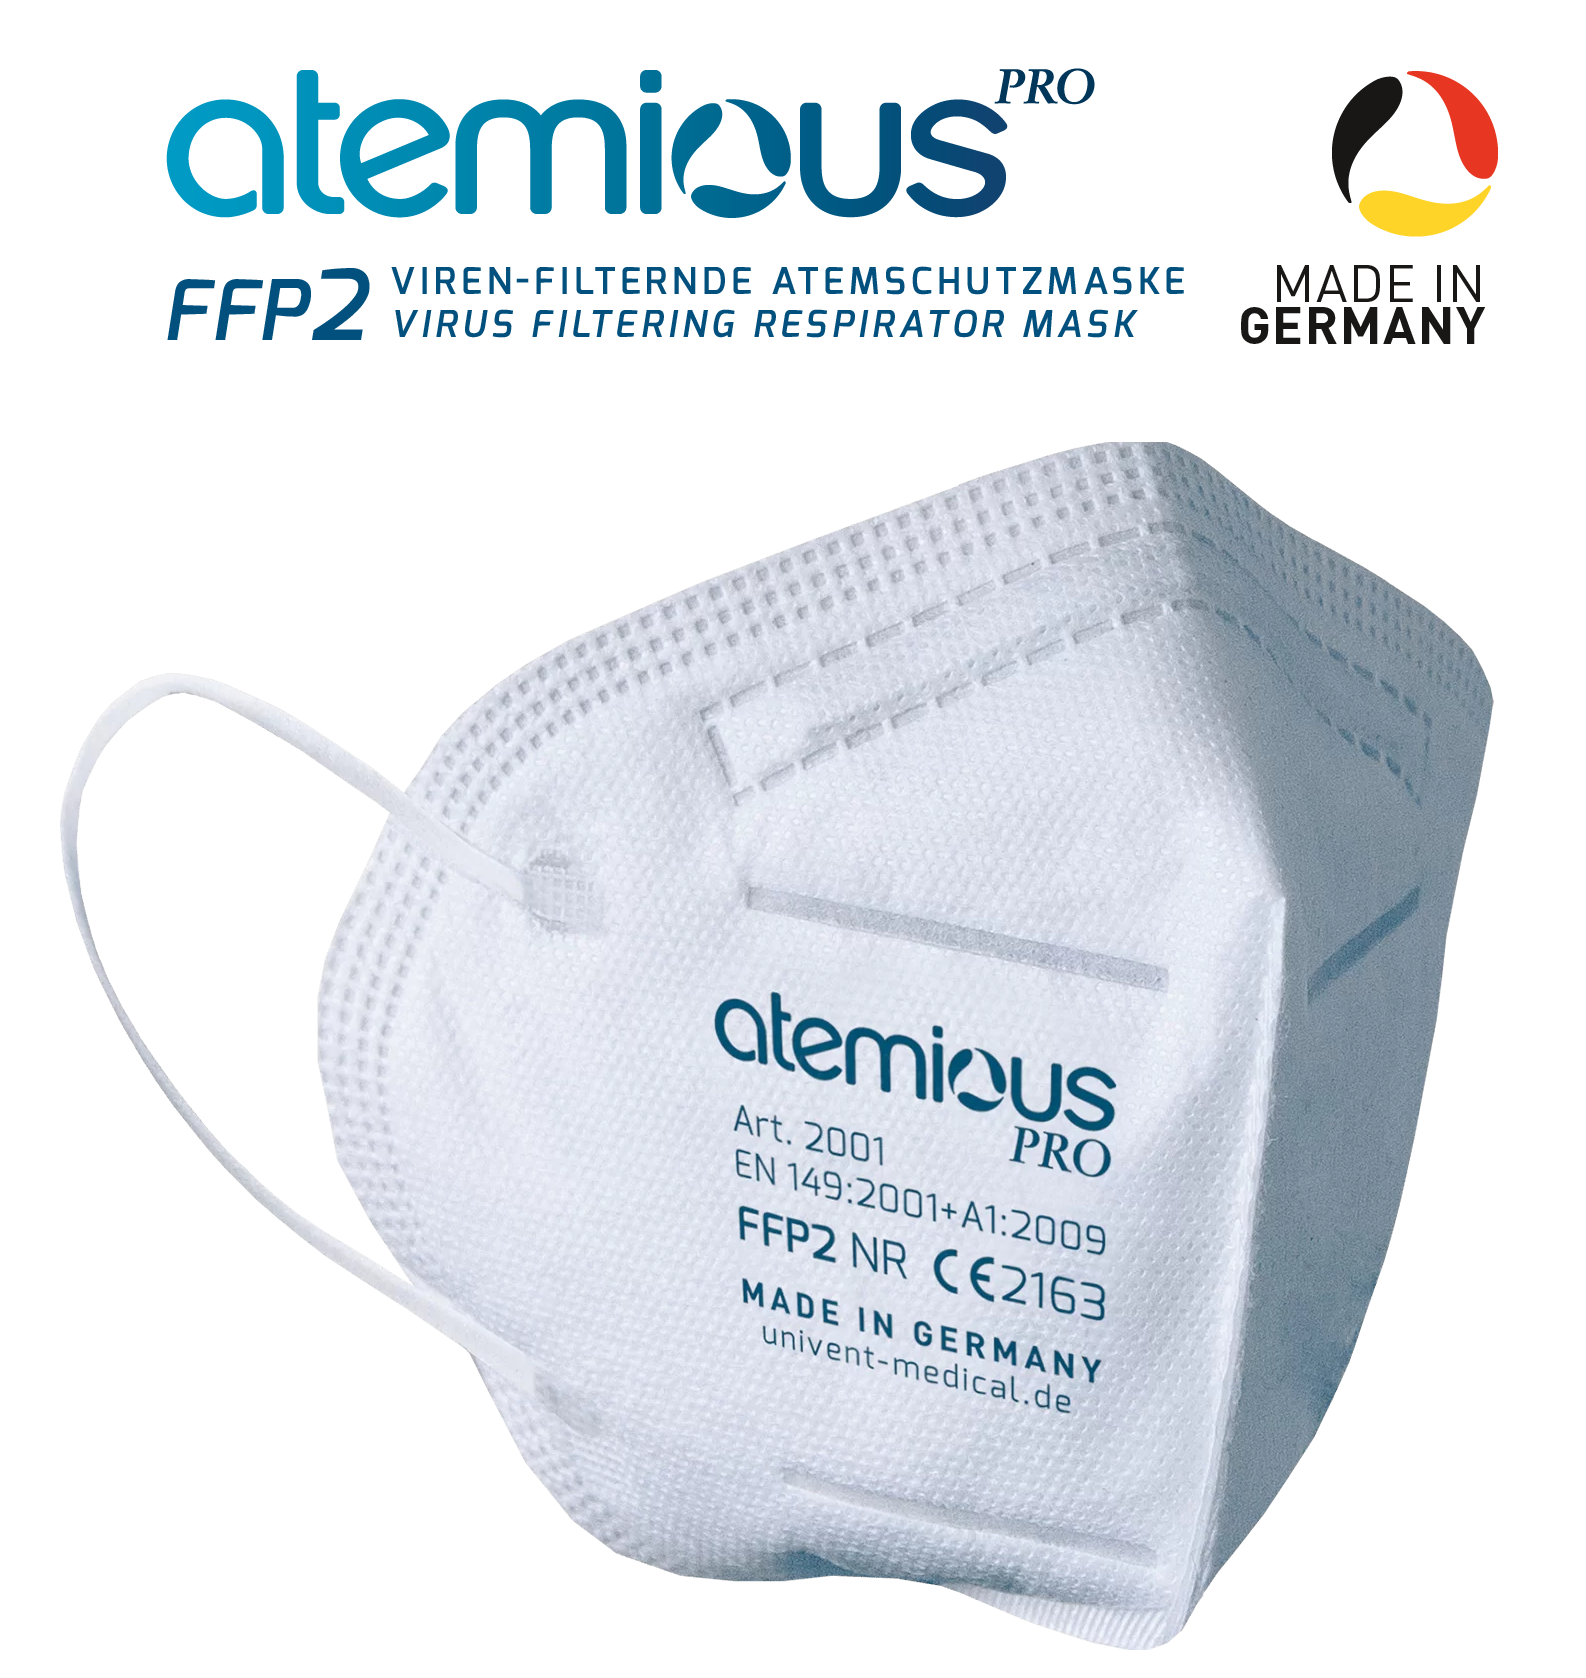 Atemious Pro FFP2 Atemschutzmask, Made in Germany